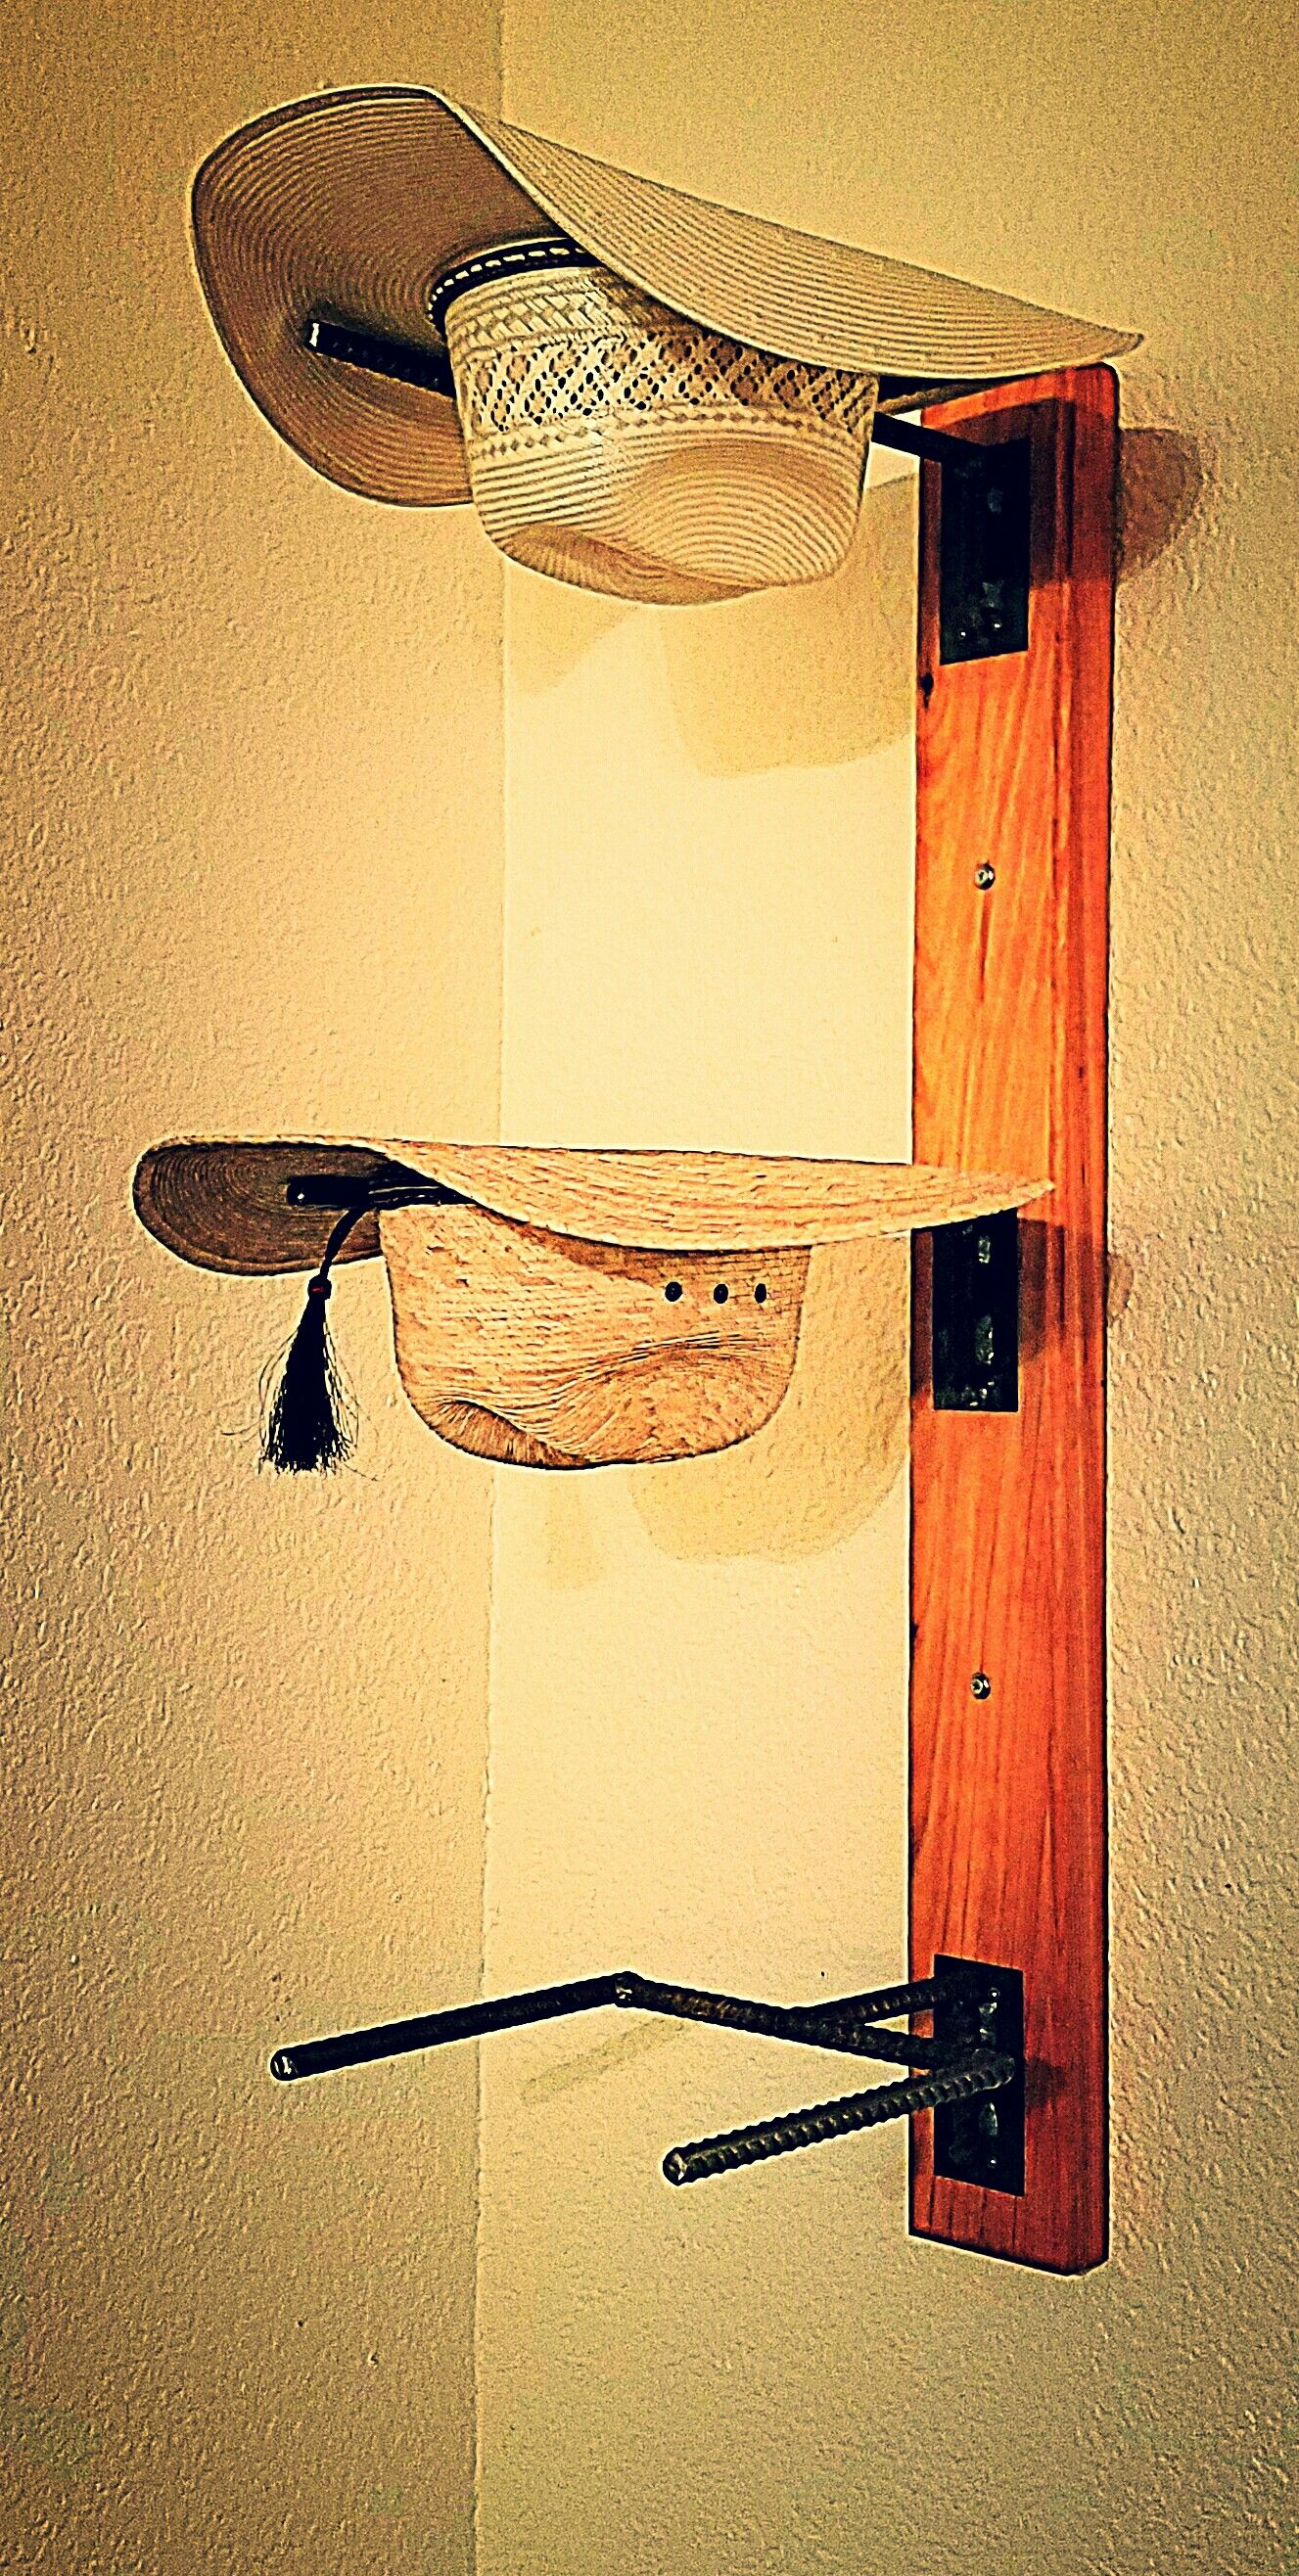 15 Creative Hat Rack Ideas Pros Cons For Cozier Home Diy Hat Rack Cowboy Hat Rack Hat Rack